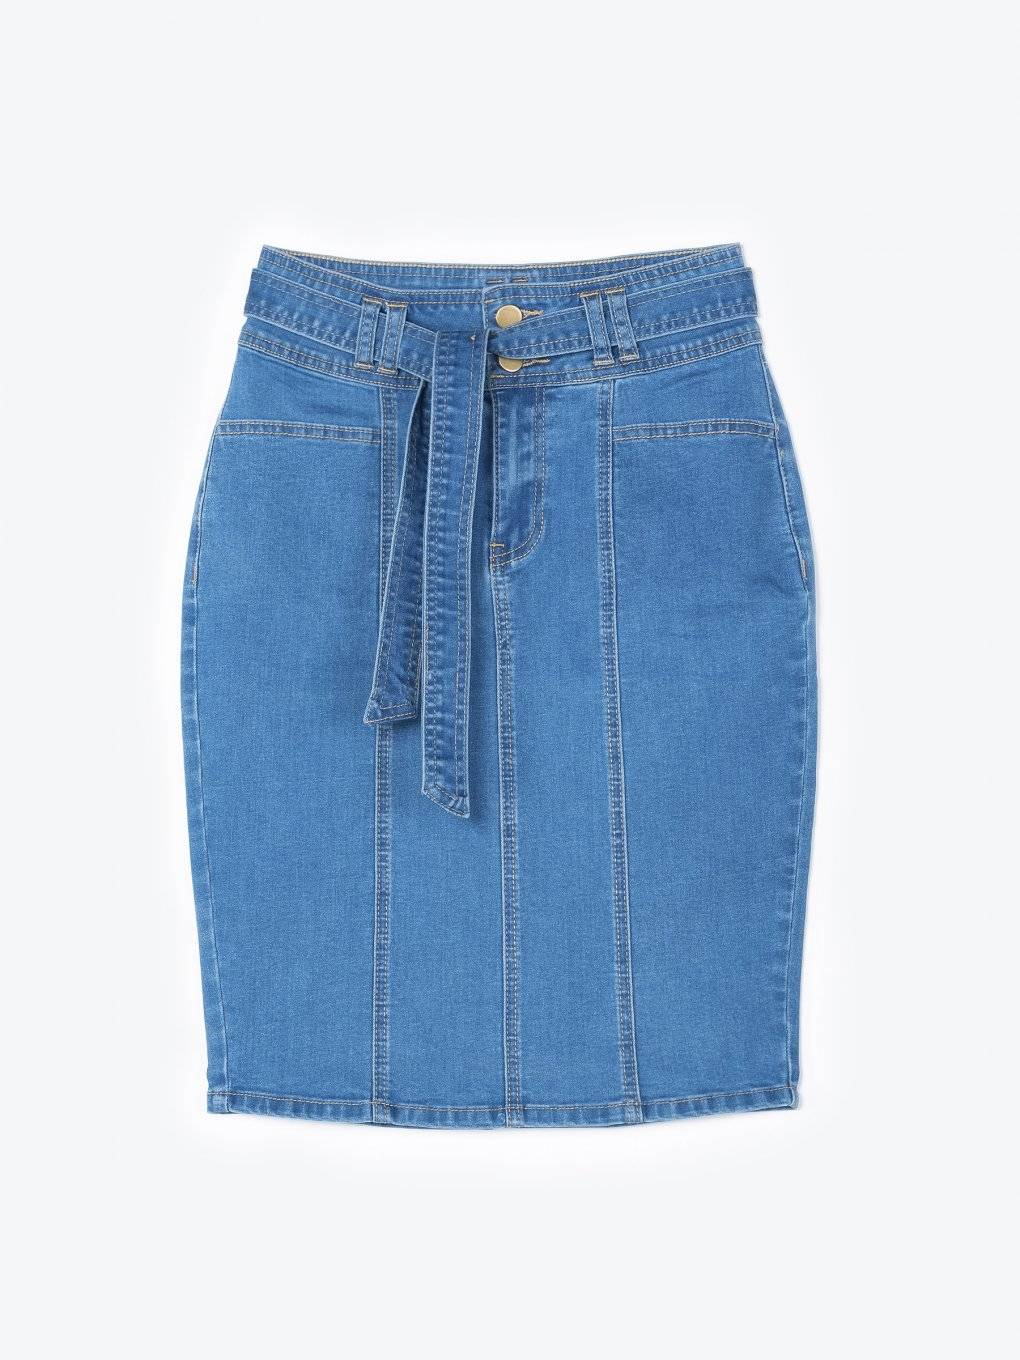 Bodycon denim skirt with belt